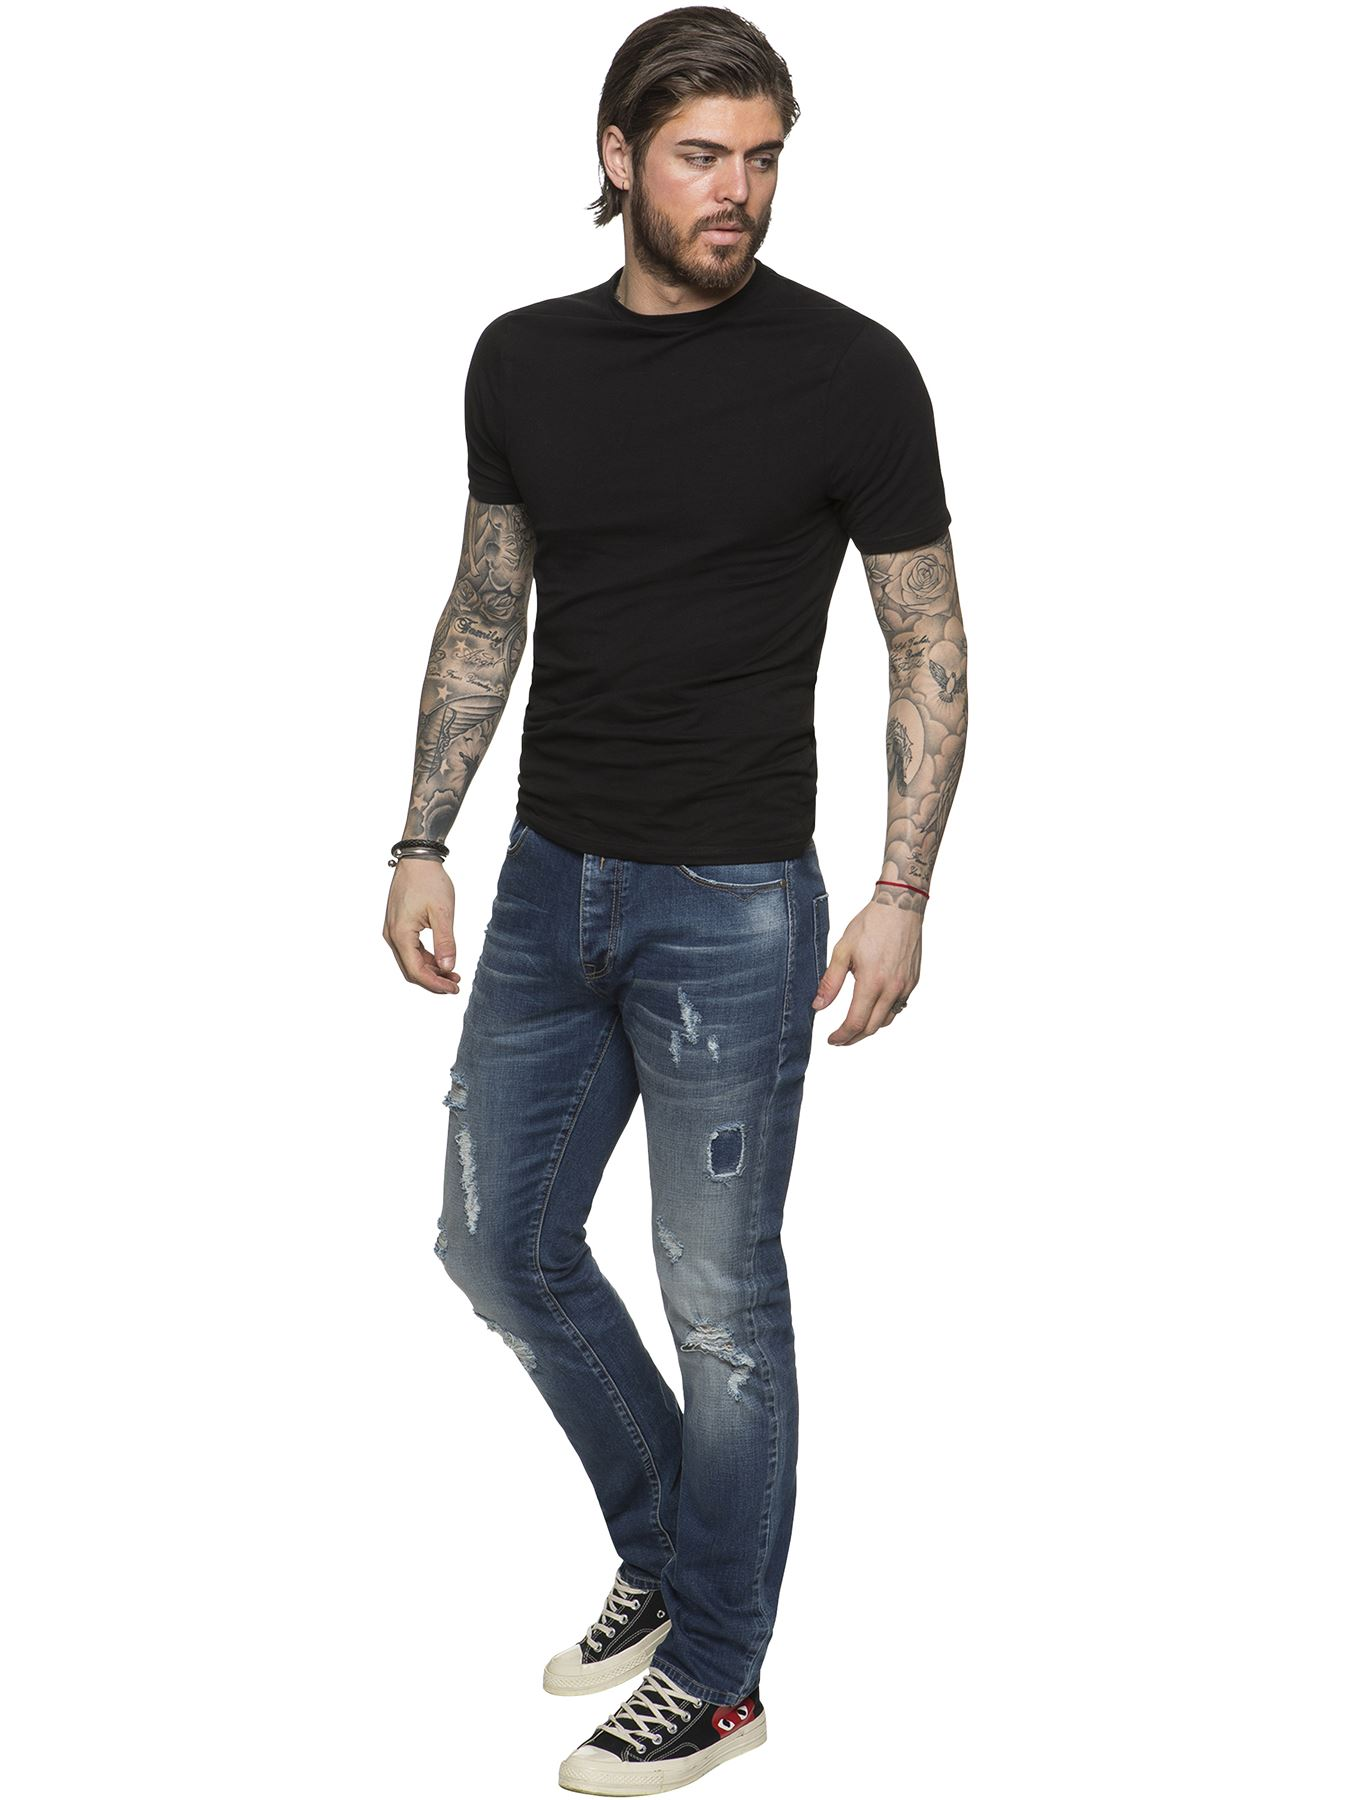 ETO-Designer-Mens-Ripped-Blue-Jeans-Distressed-Denim-Tapered-Fit-Trousers-Pants thumbnail 3